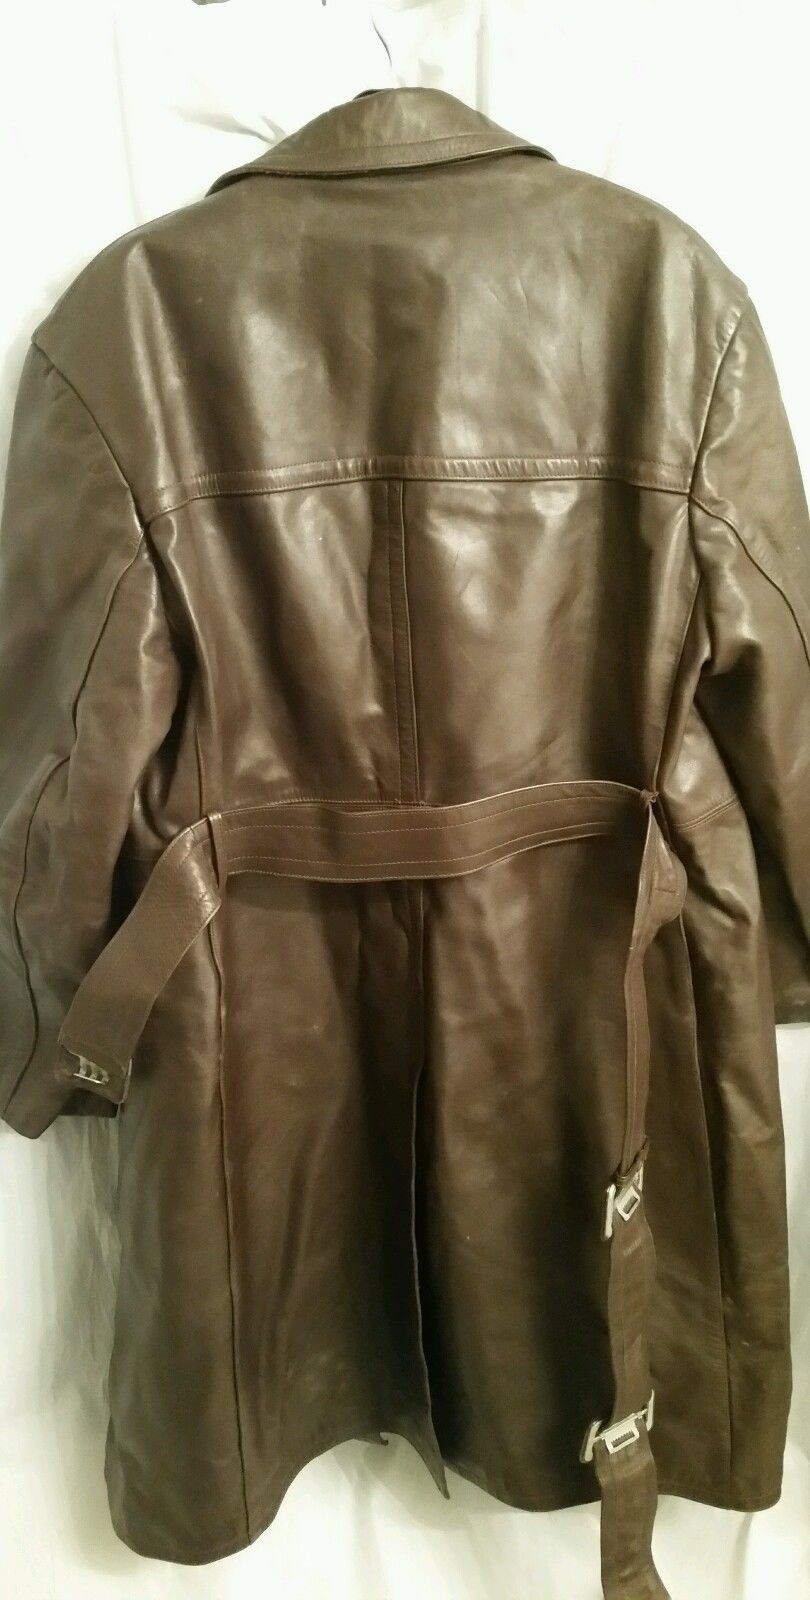 1950's German (probably Teichert) brown leather trench coat | The ...